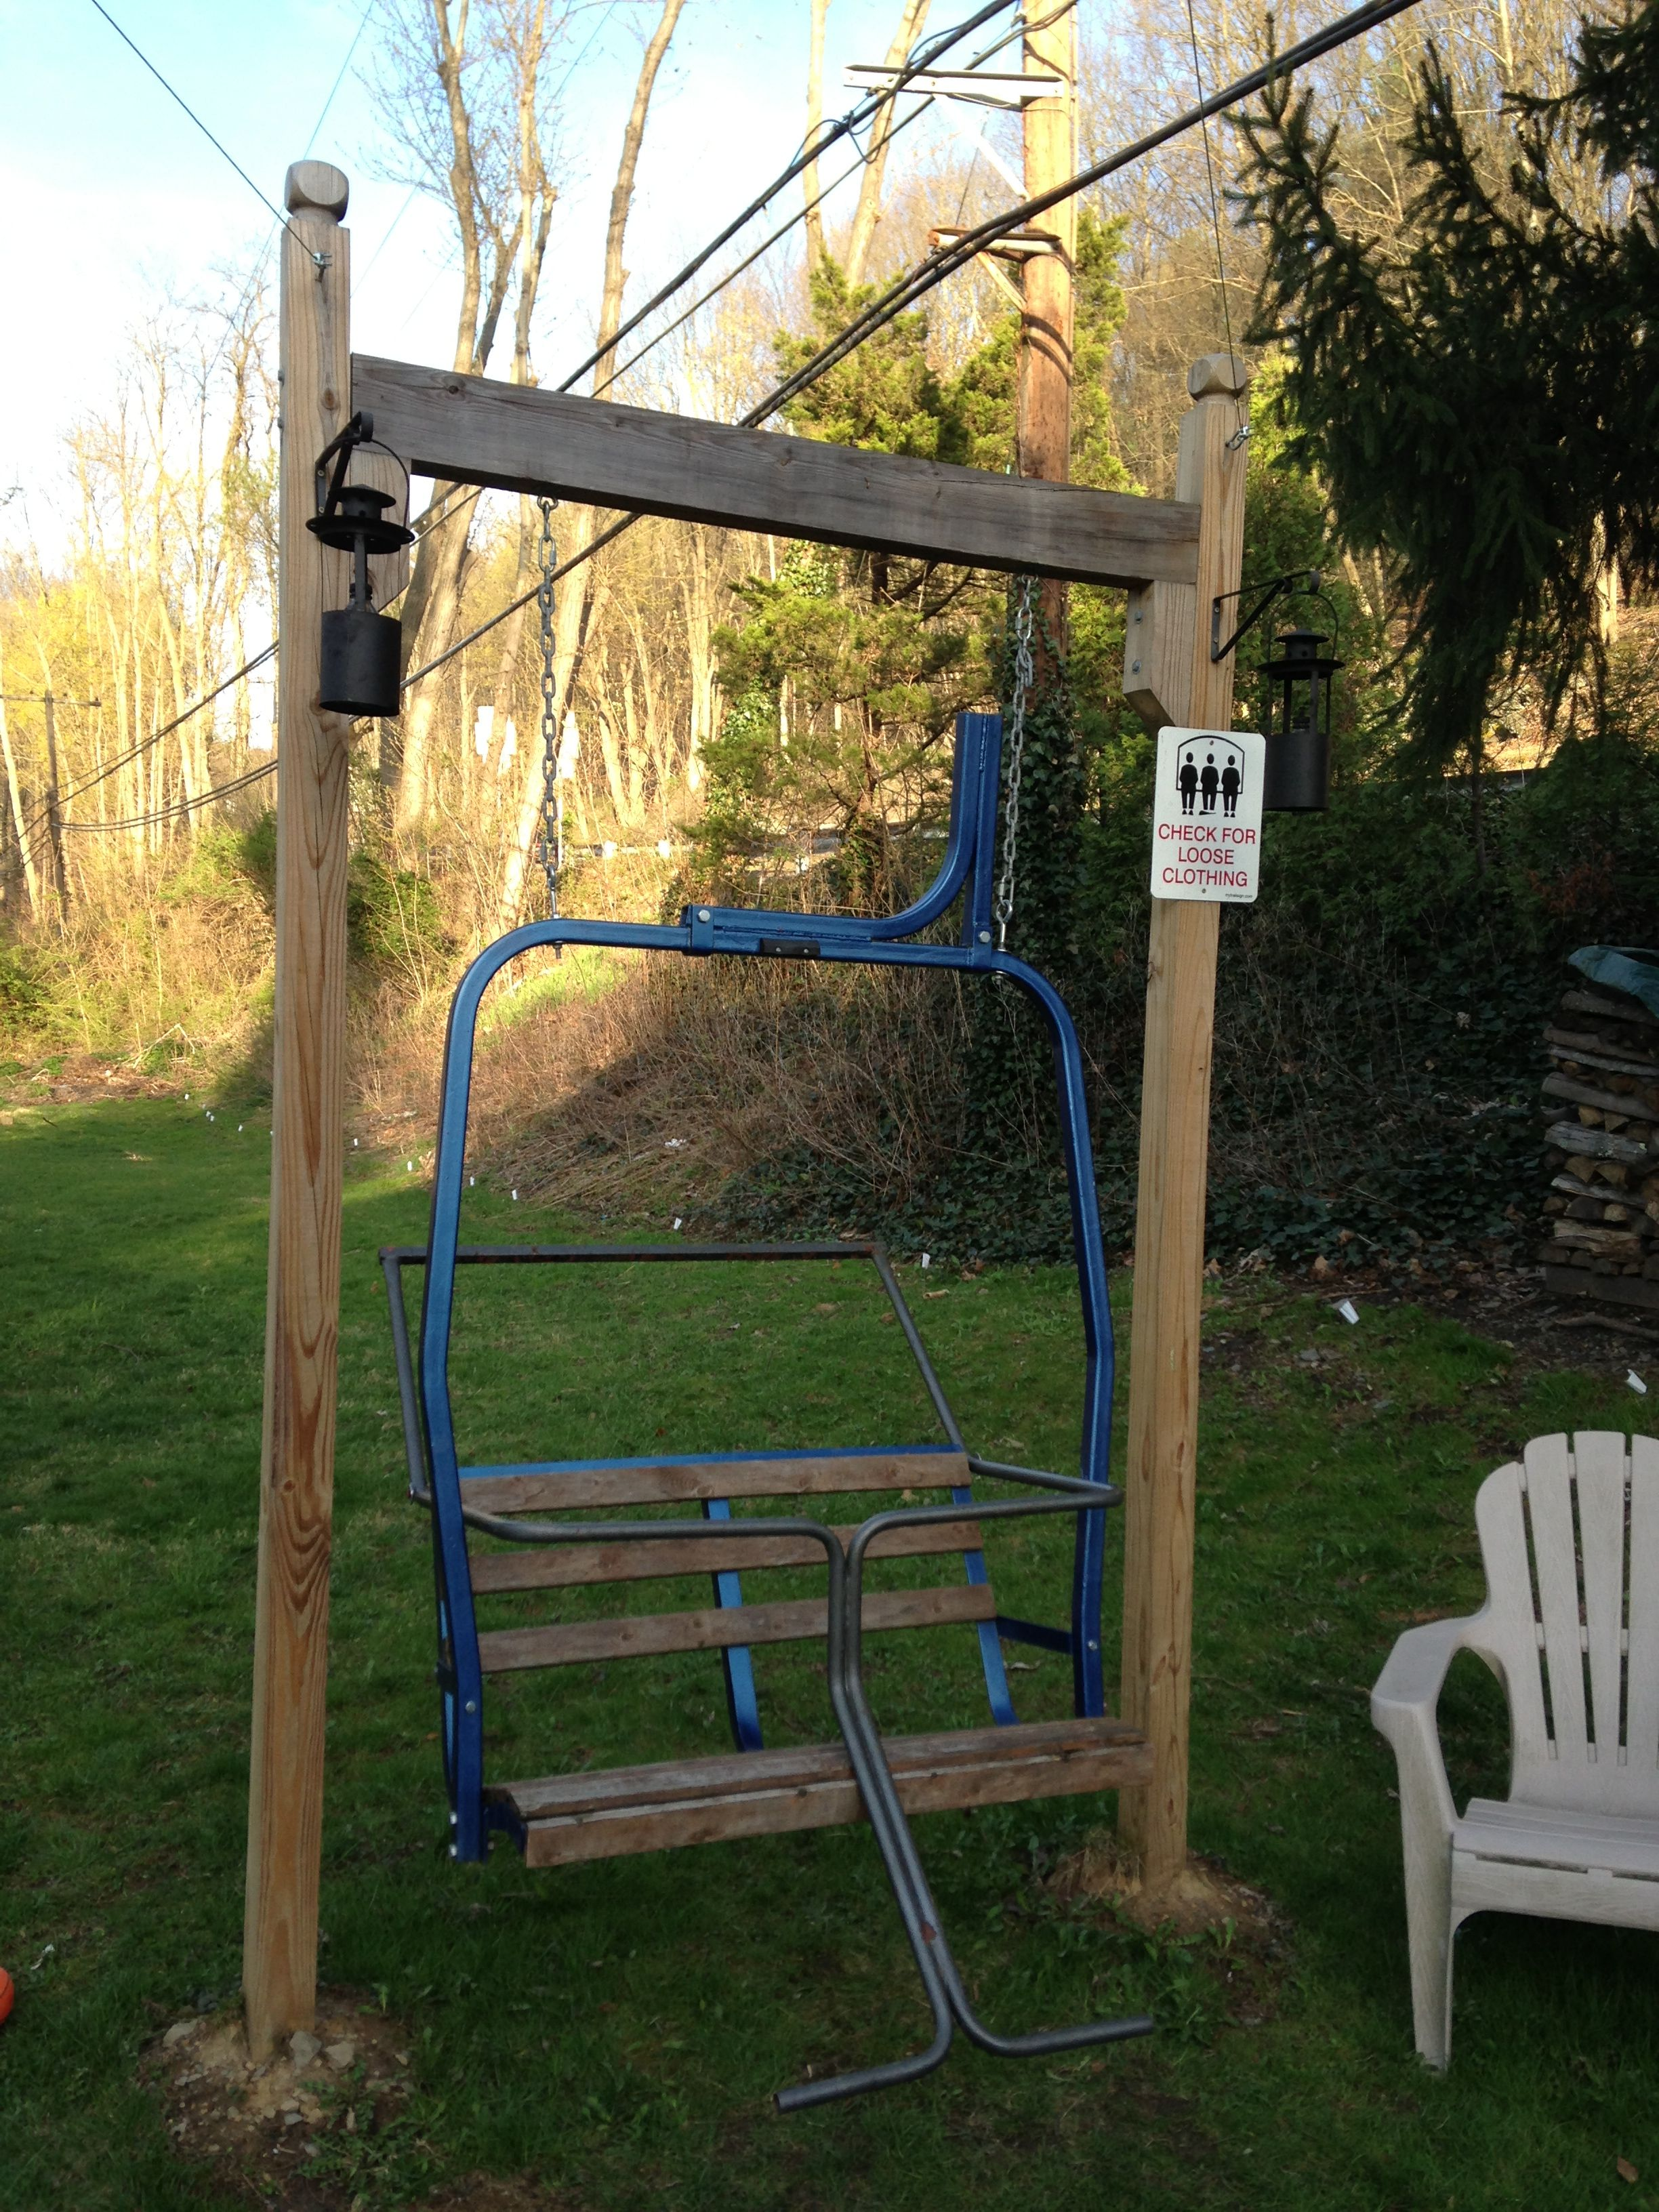 Swing Chair Local Memory Foam Cushion Ski Lift Using An Old Double Frame From A Area I Was Able To Build This The Primed Painted